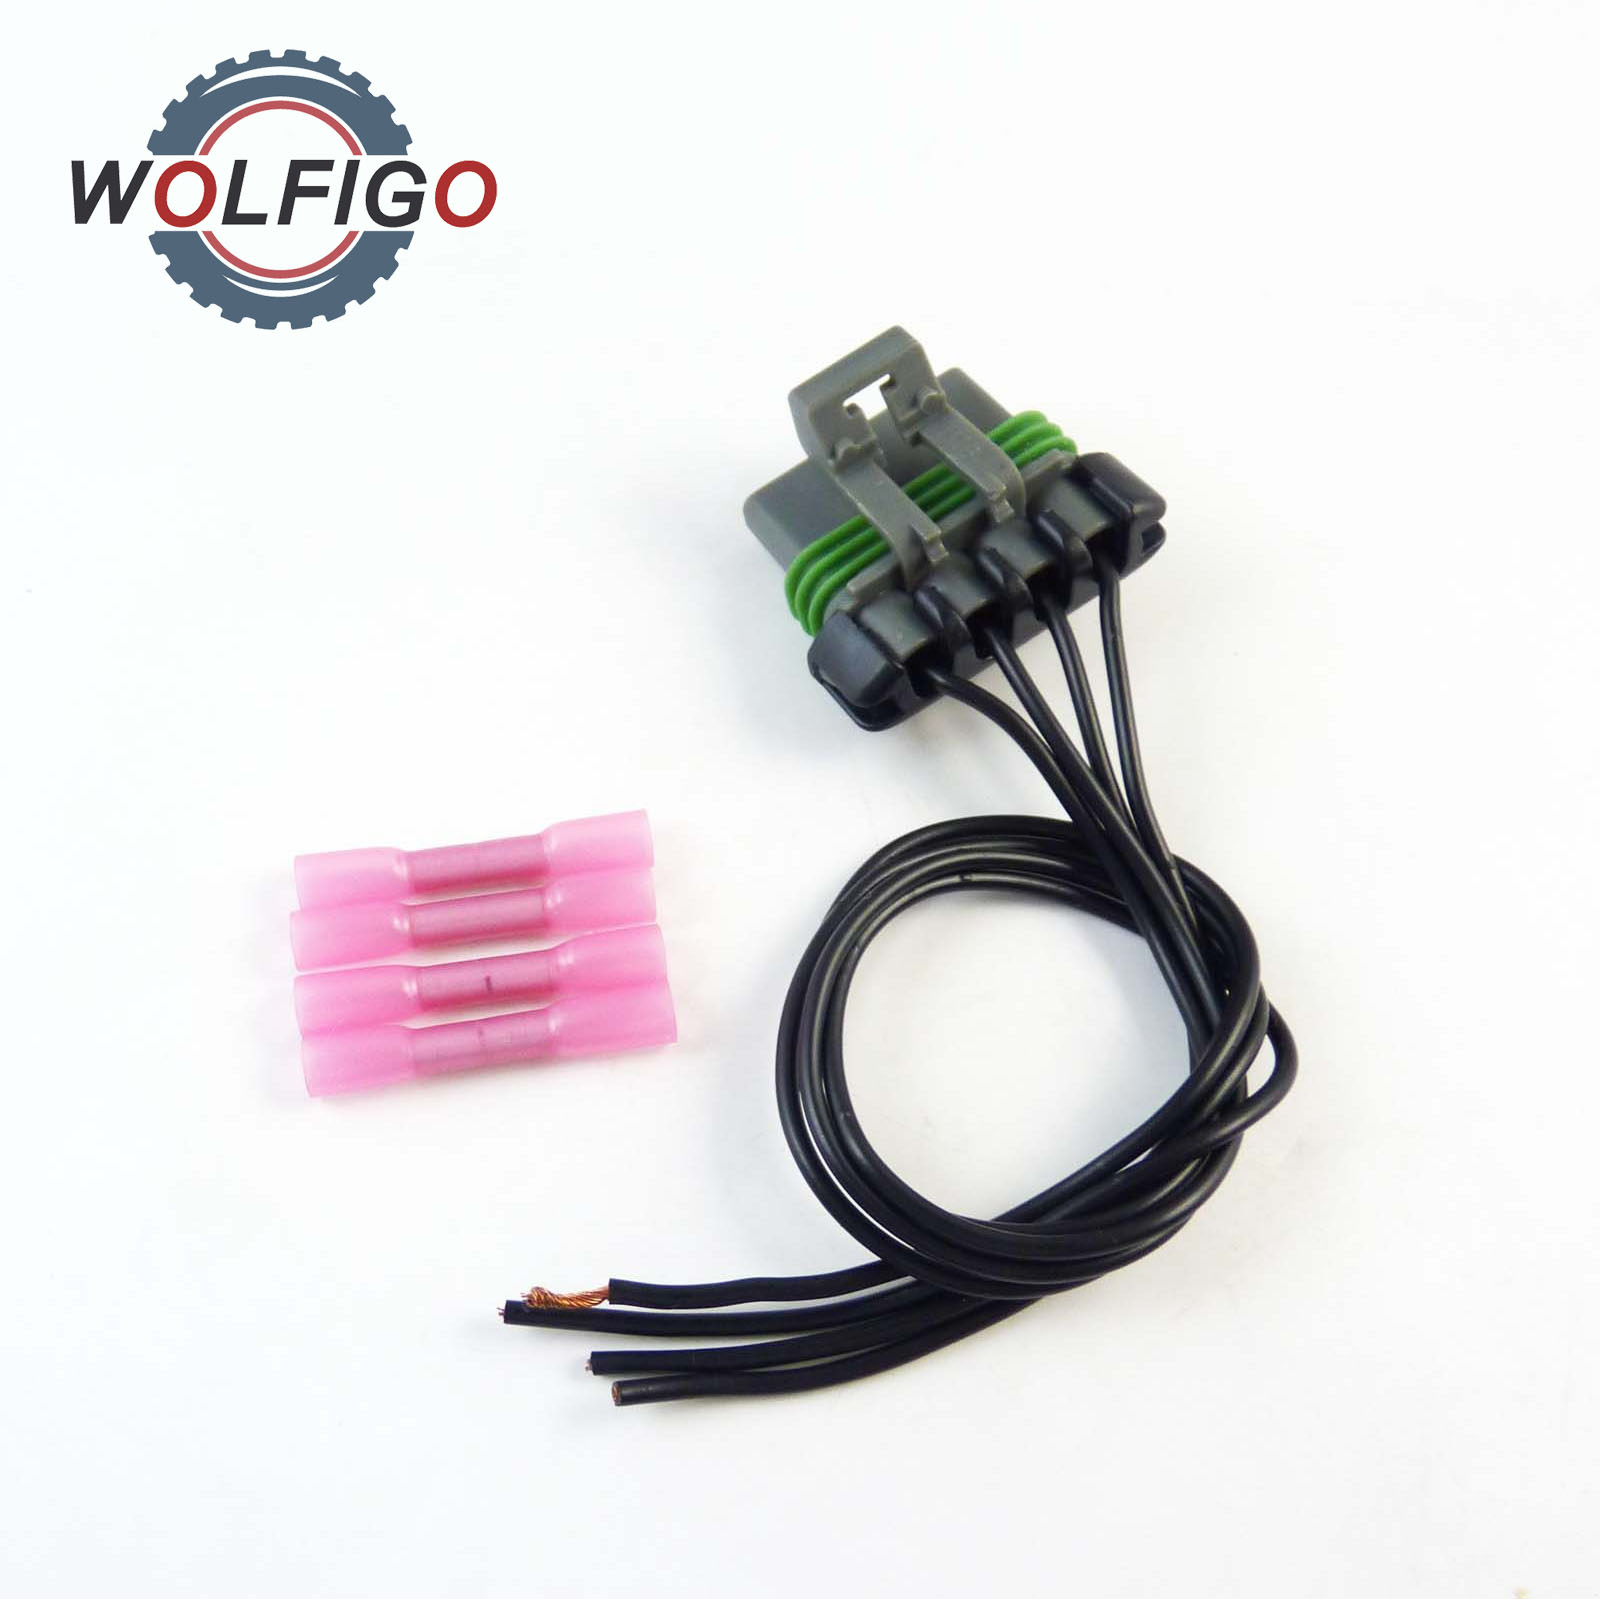 hight resolution of wolfigo hvac blower motor resistor connector pigtail harness fit for chevrolet colorado gmc canyon 1p1560 pt5909 pt1231 in a c heater controls from